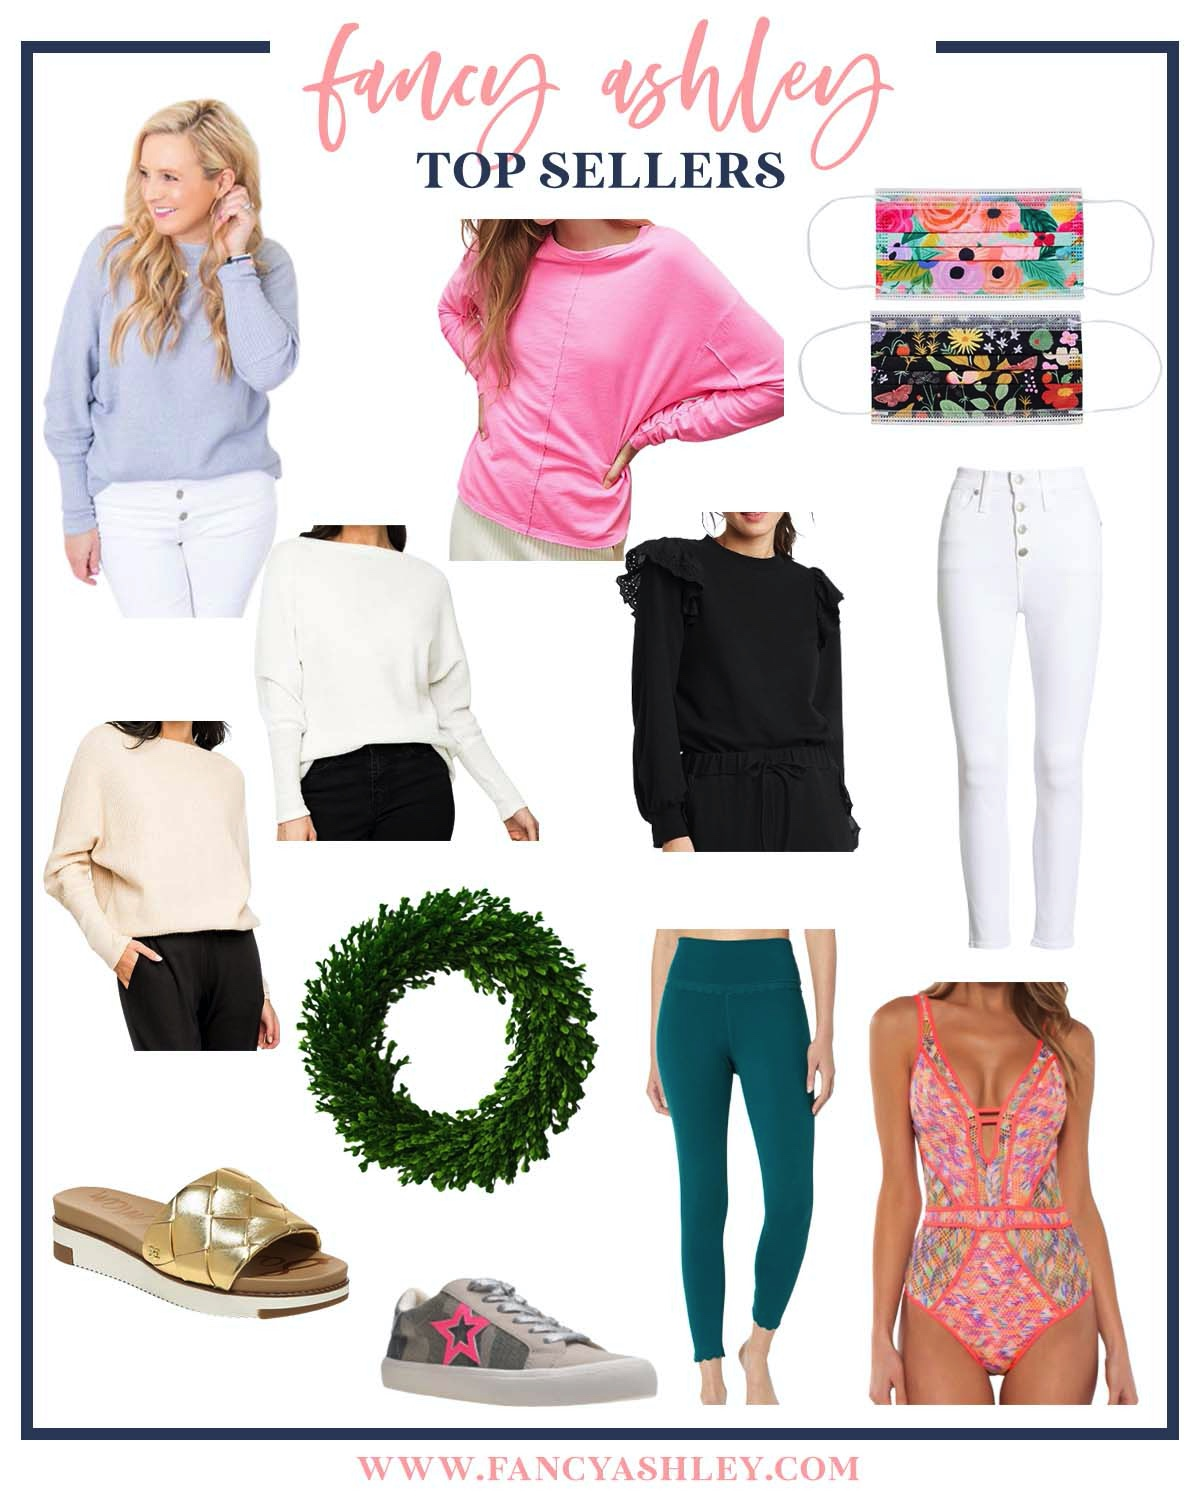 Top Sellers by popular Houston life and style blog, Fancy Ashley: collage image of sweaters, white jeans, swimsuit, Rifle Paper Co. masks, faux boxwood wreath gold slide sandals, and grey sneakers.